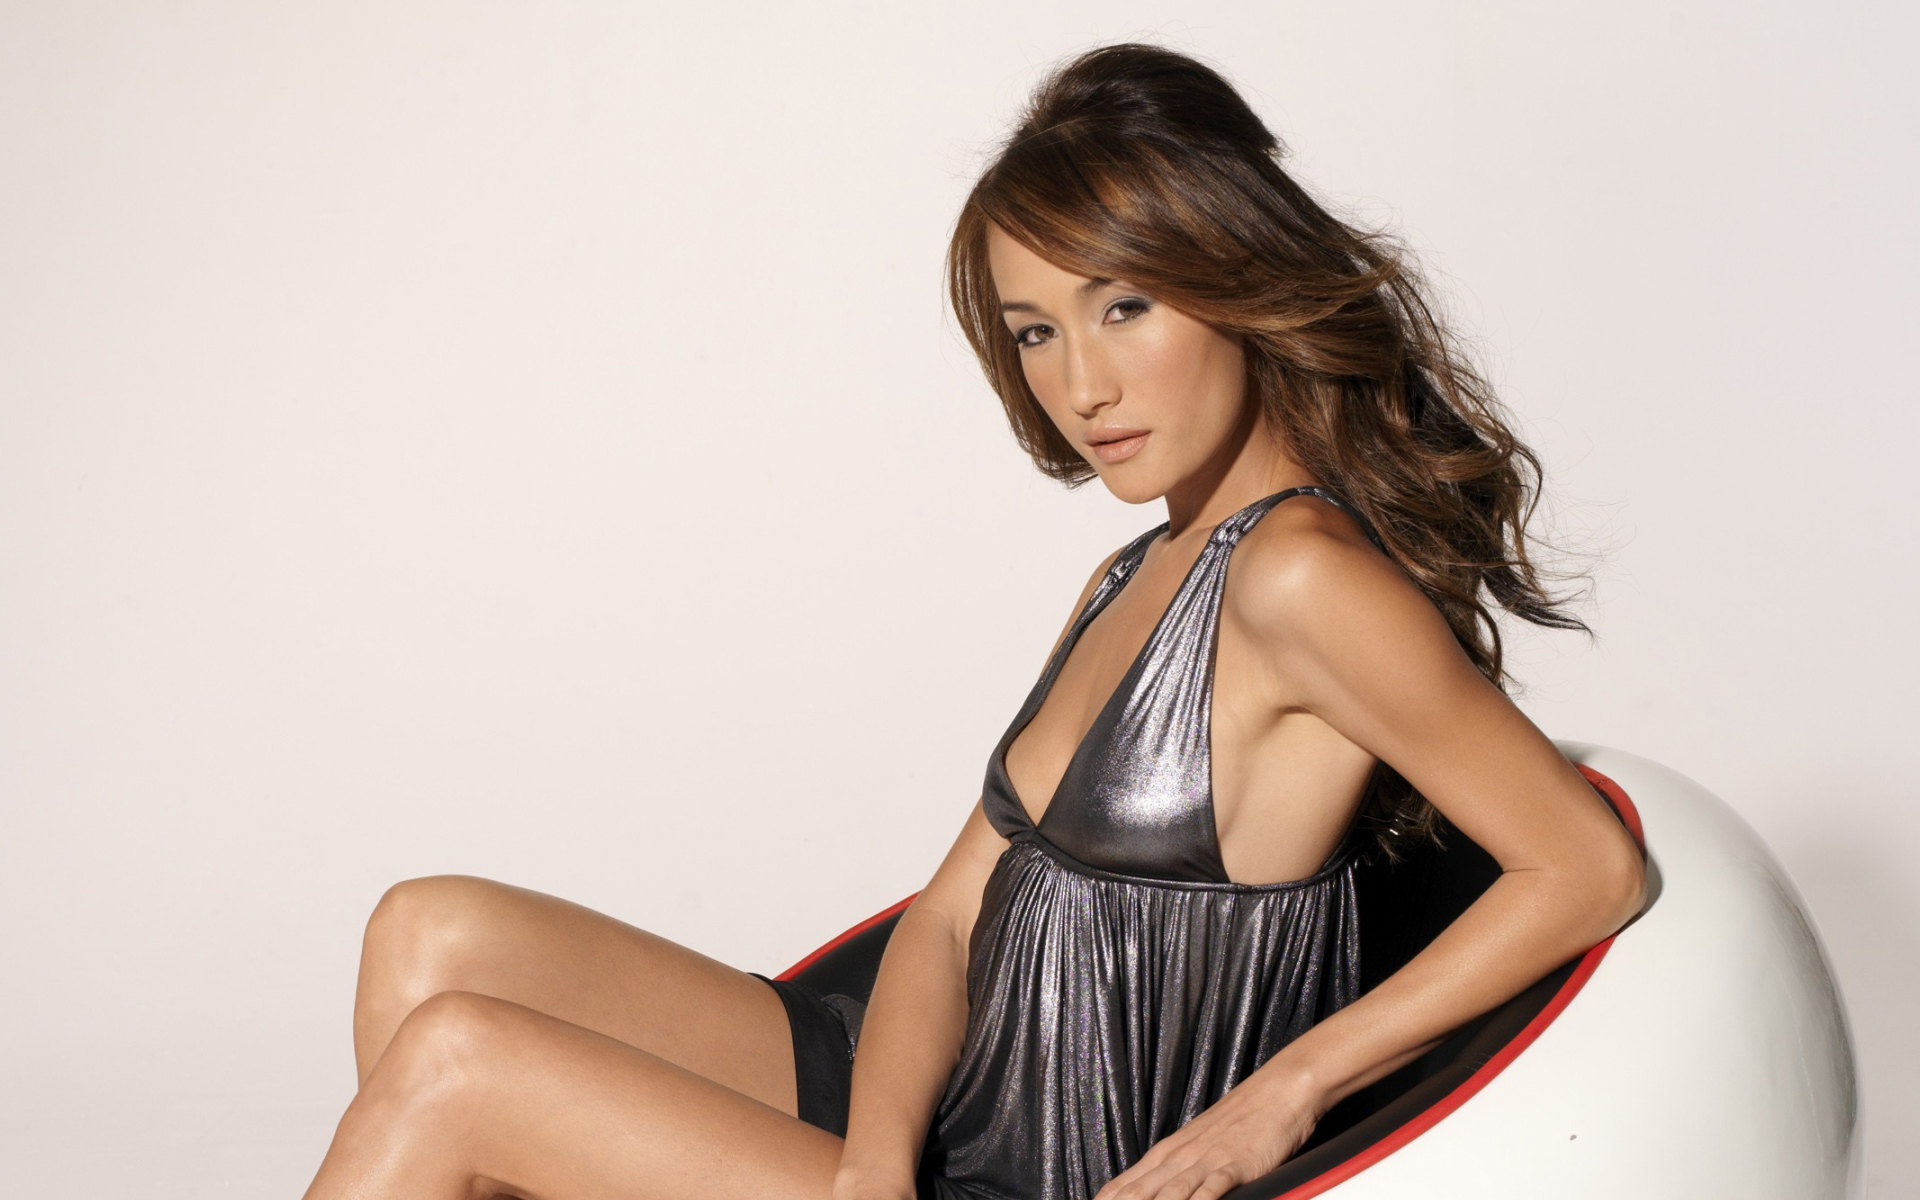 American actress and former fashion model Margaret Denise Quigley, famously known as Maggie Q, was born on May 22, 1979 in Honolulu, Hawaii.